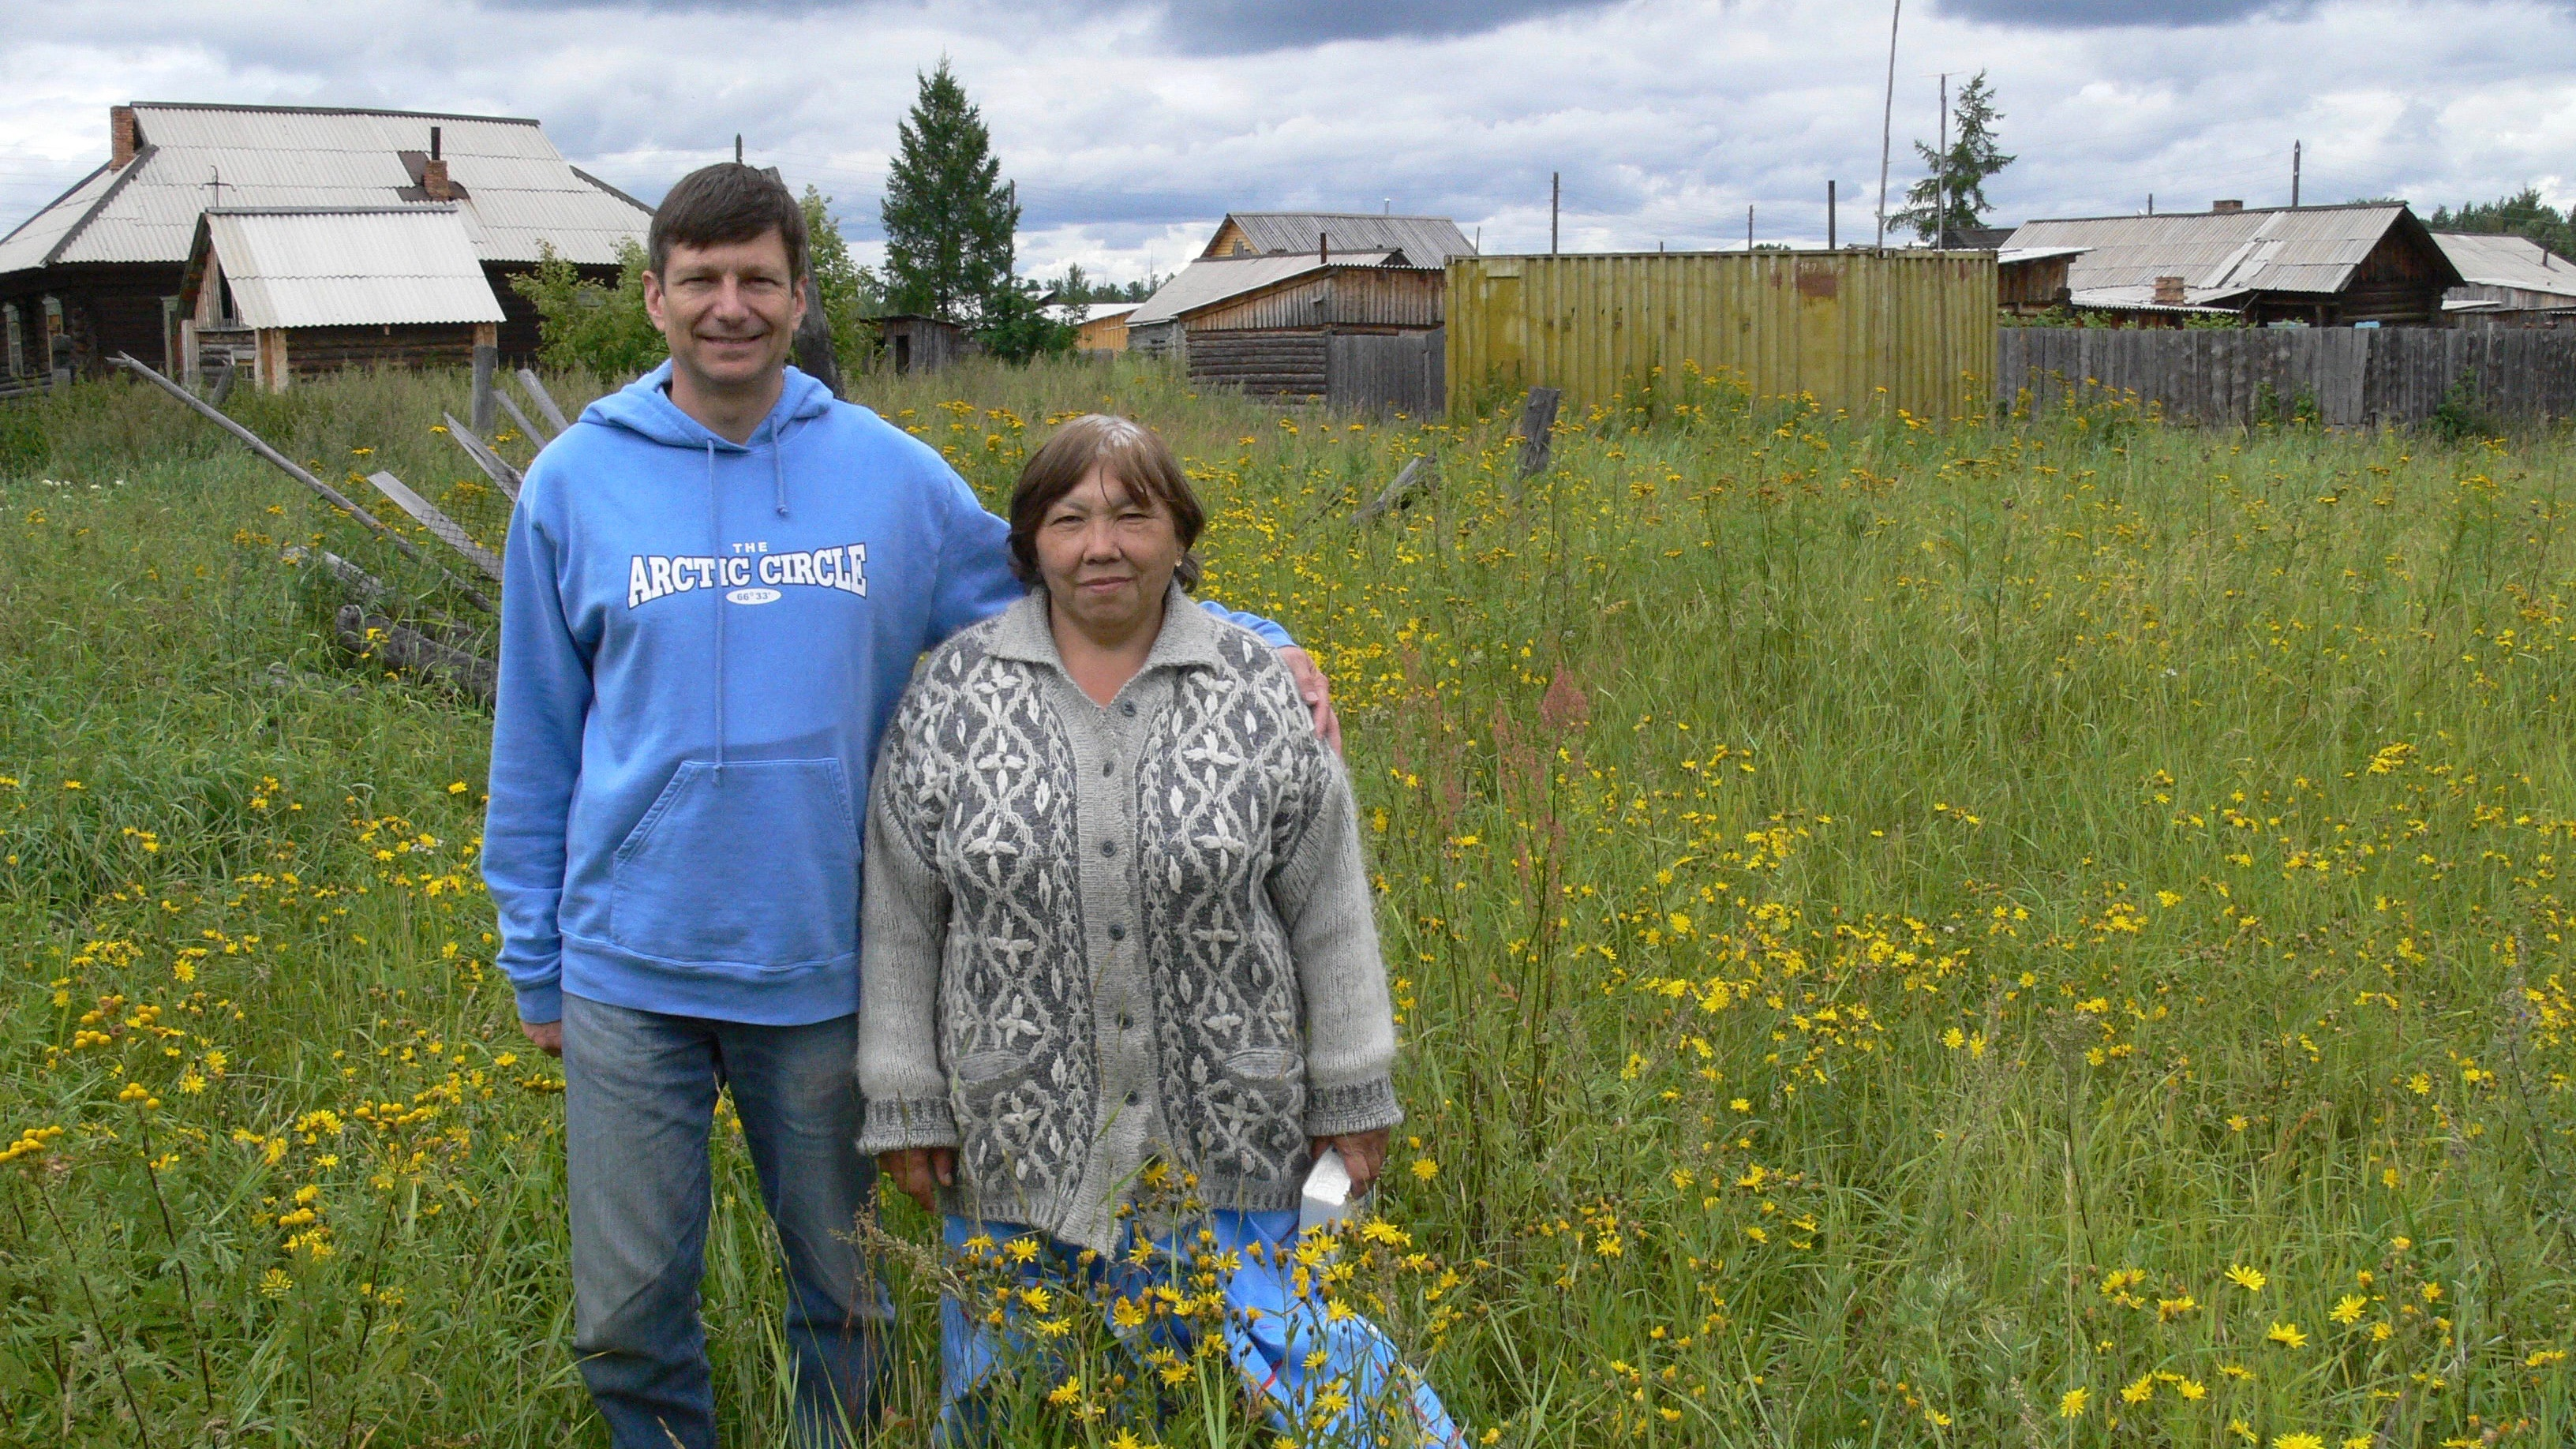 Linguist Edward Vajda with a Ket woman in her home village in Siberia, Russia.